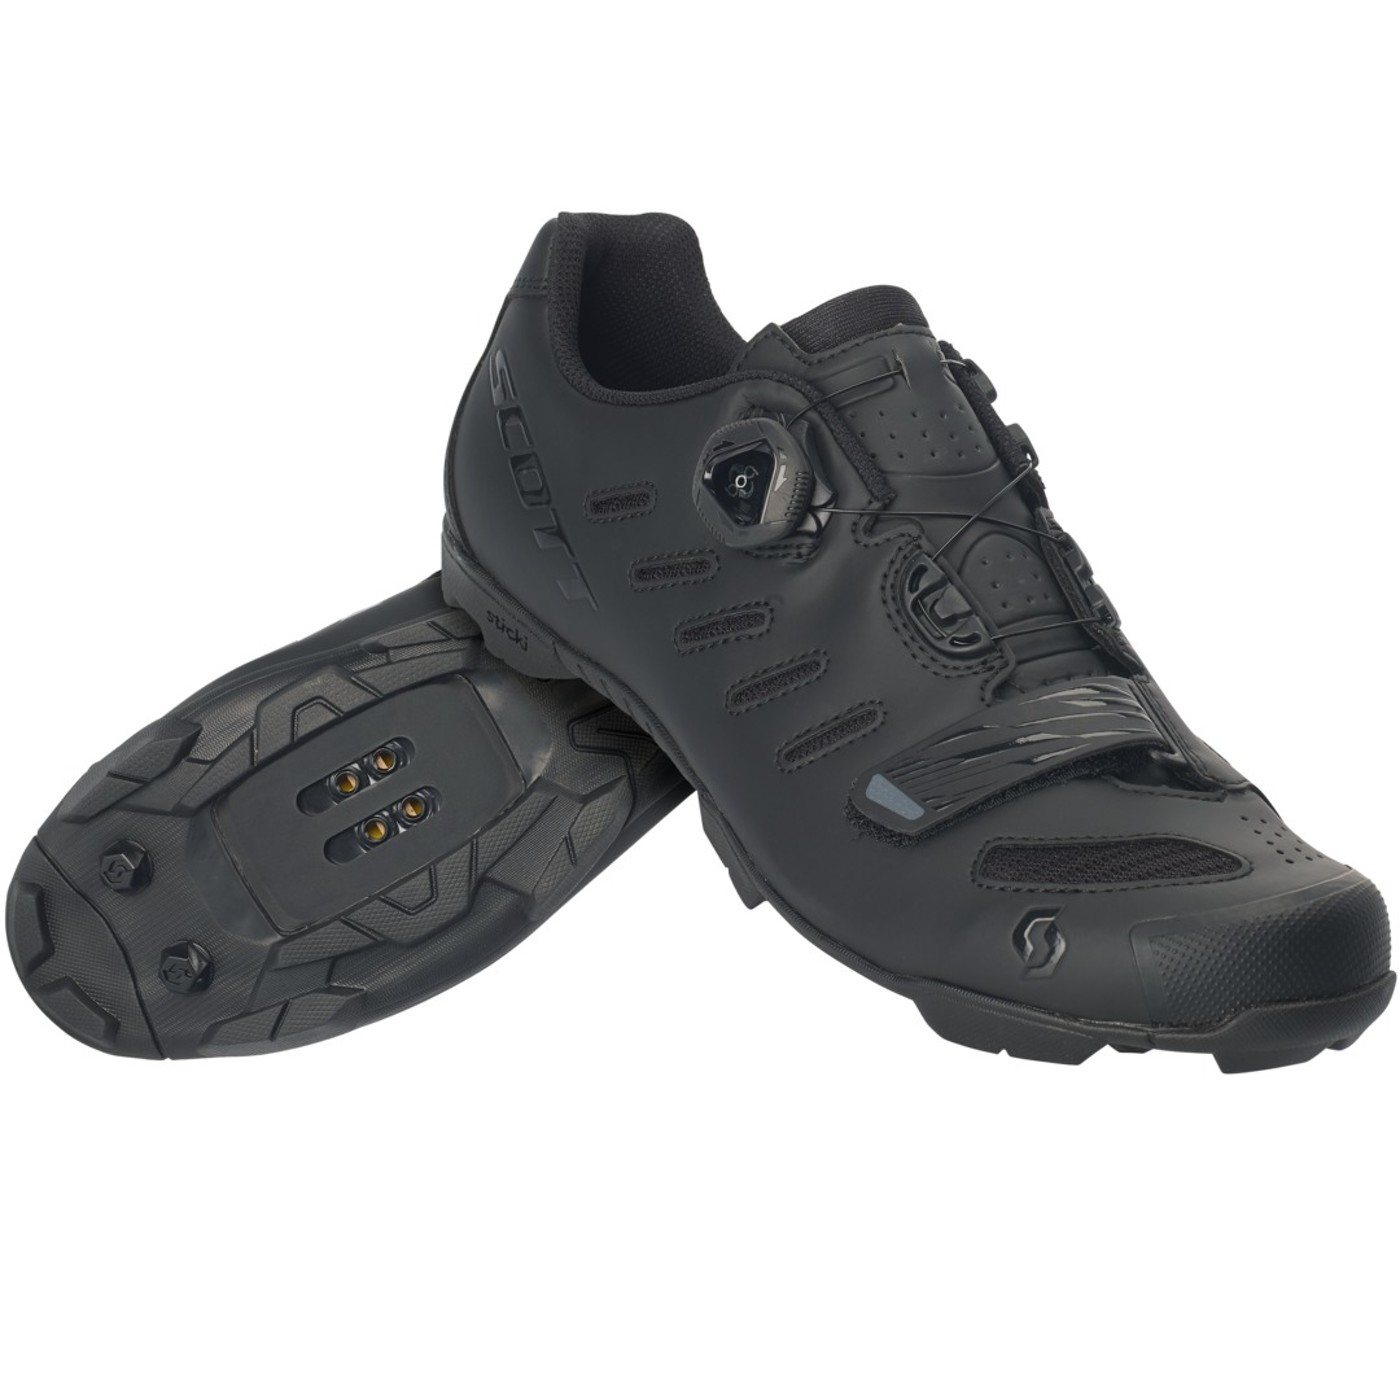 SCOTT SCO SHOE MTB TEAM BOA - Herren